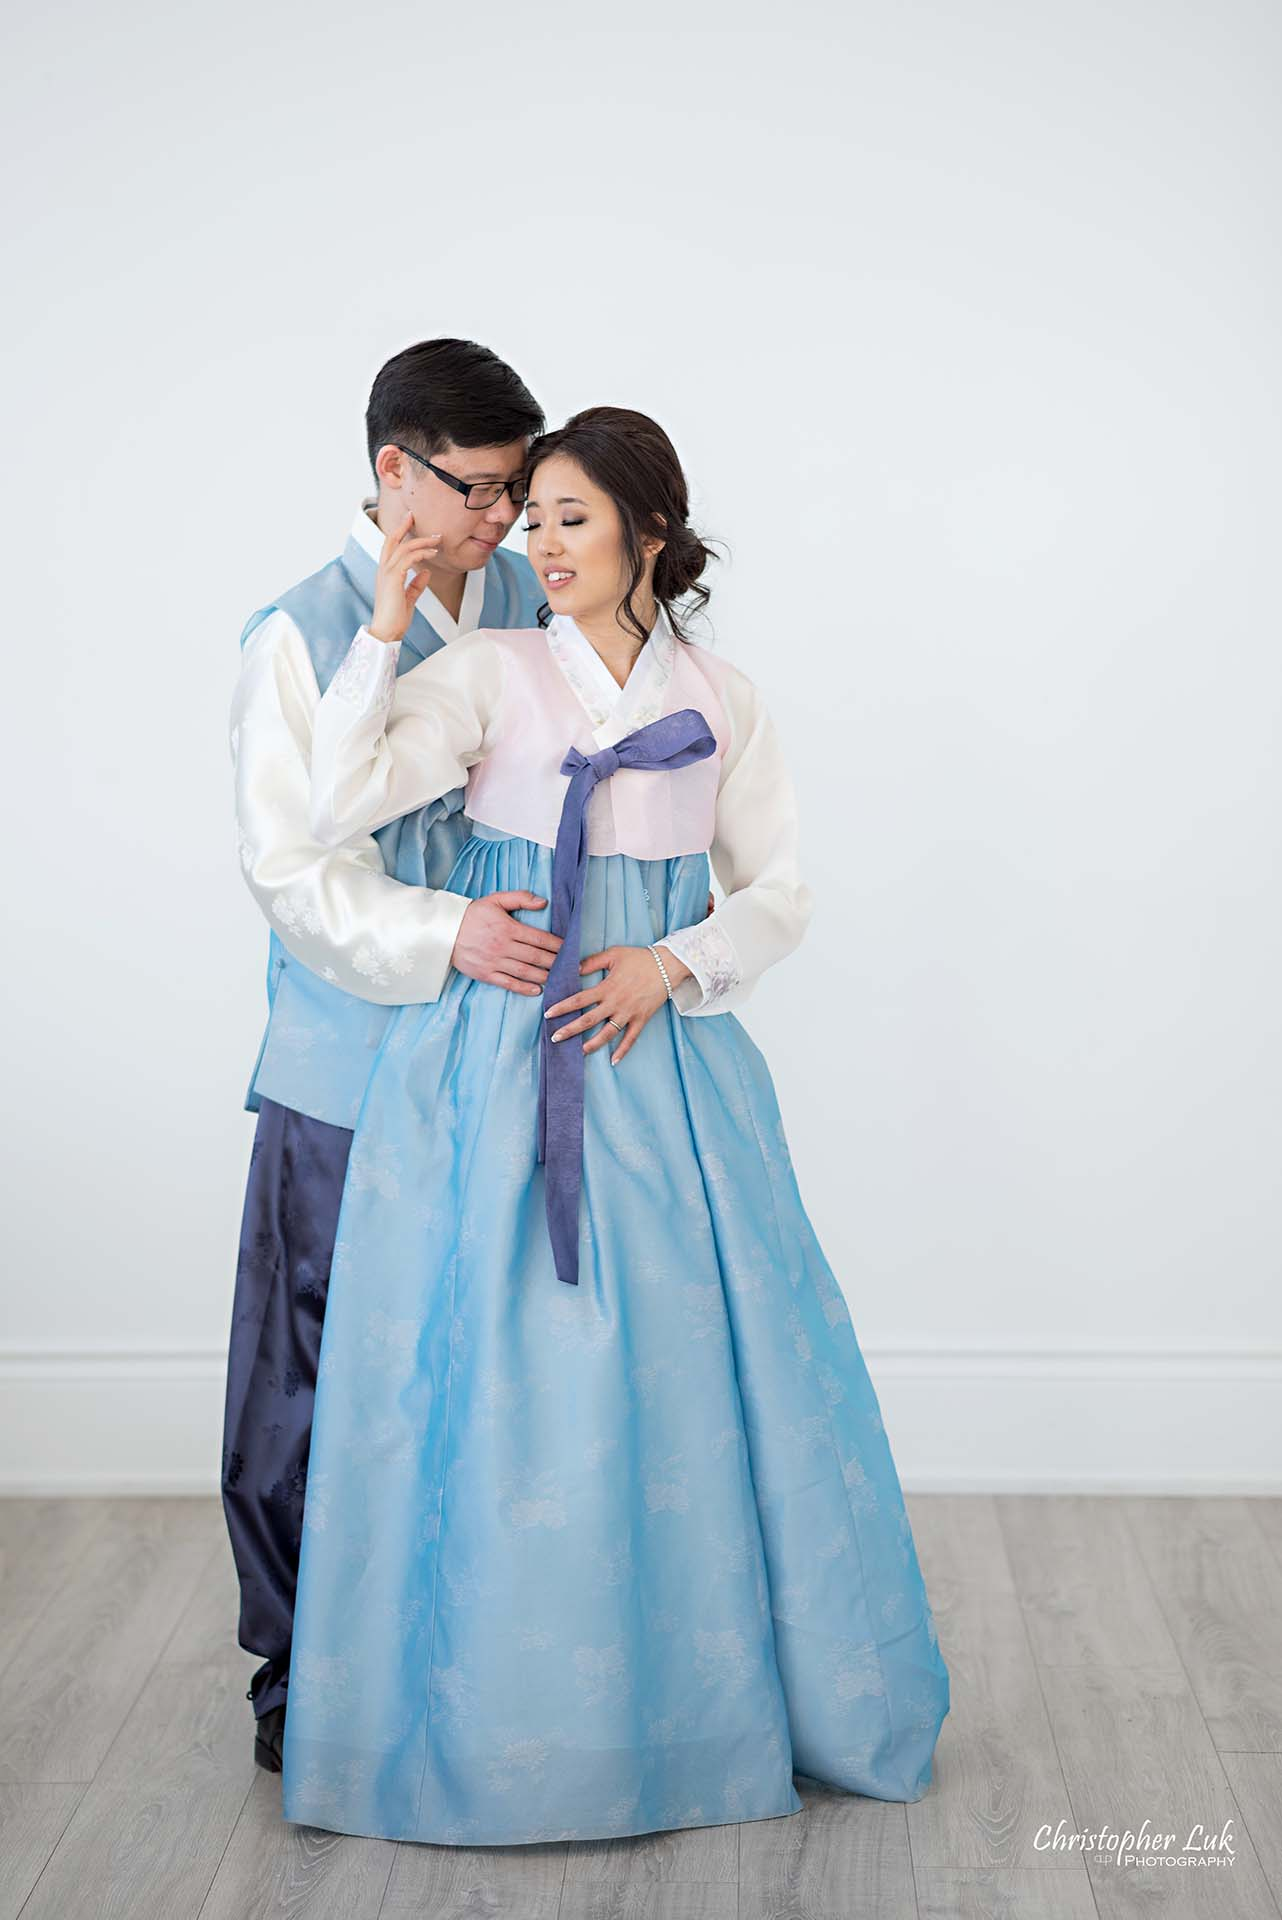 Christopher Luk Toronto Wedding Photographer - Mint Room Studios Bride Groom Natural Candid Photojournalistic Conservatory Ballroom Korean Hanbok Hold Hug Each Other Full Body